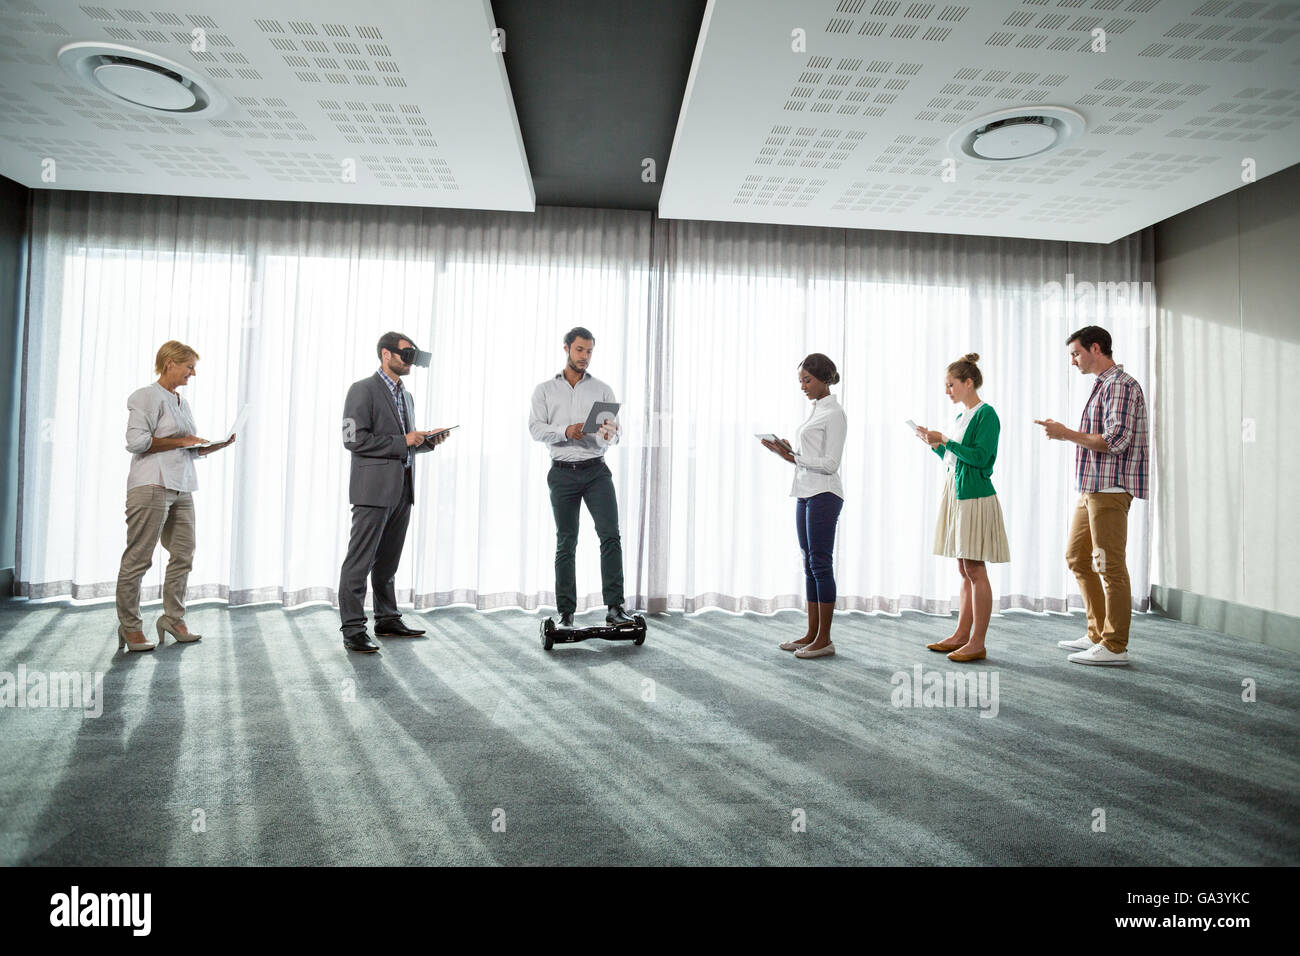 Business people using electronic gadgets - Stock Image